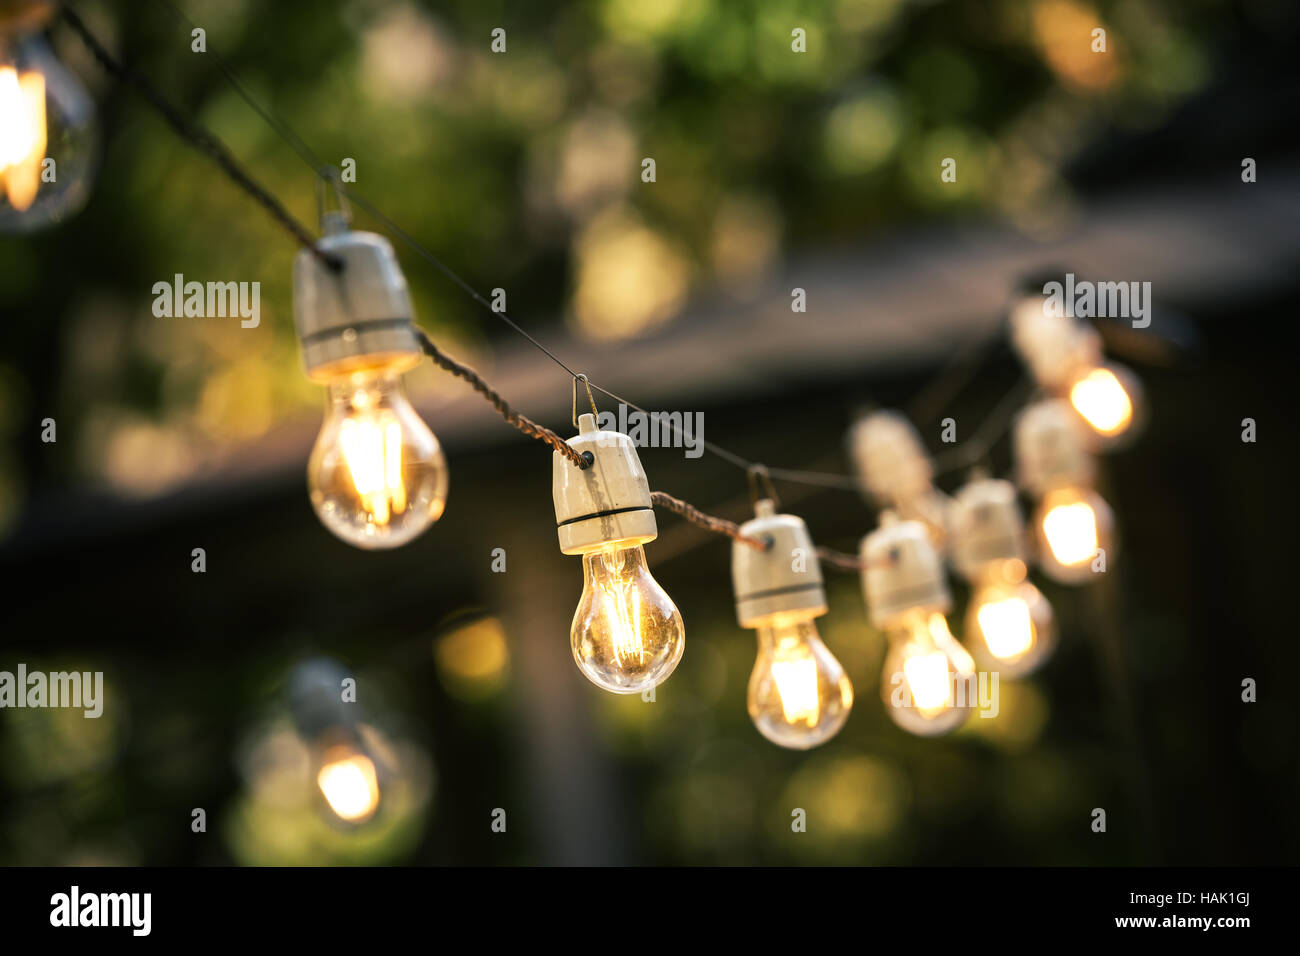 outdoor string lights hanging on a line in backyard - Stock Image